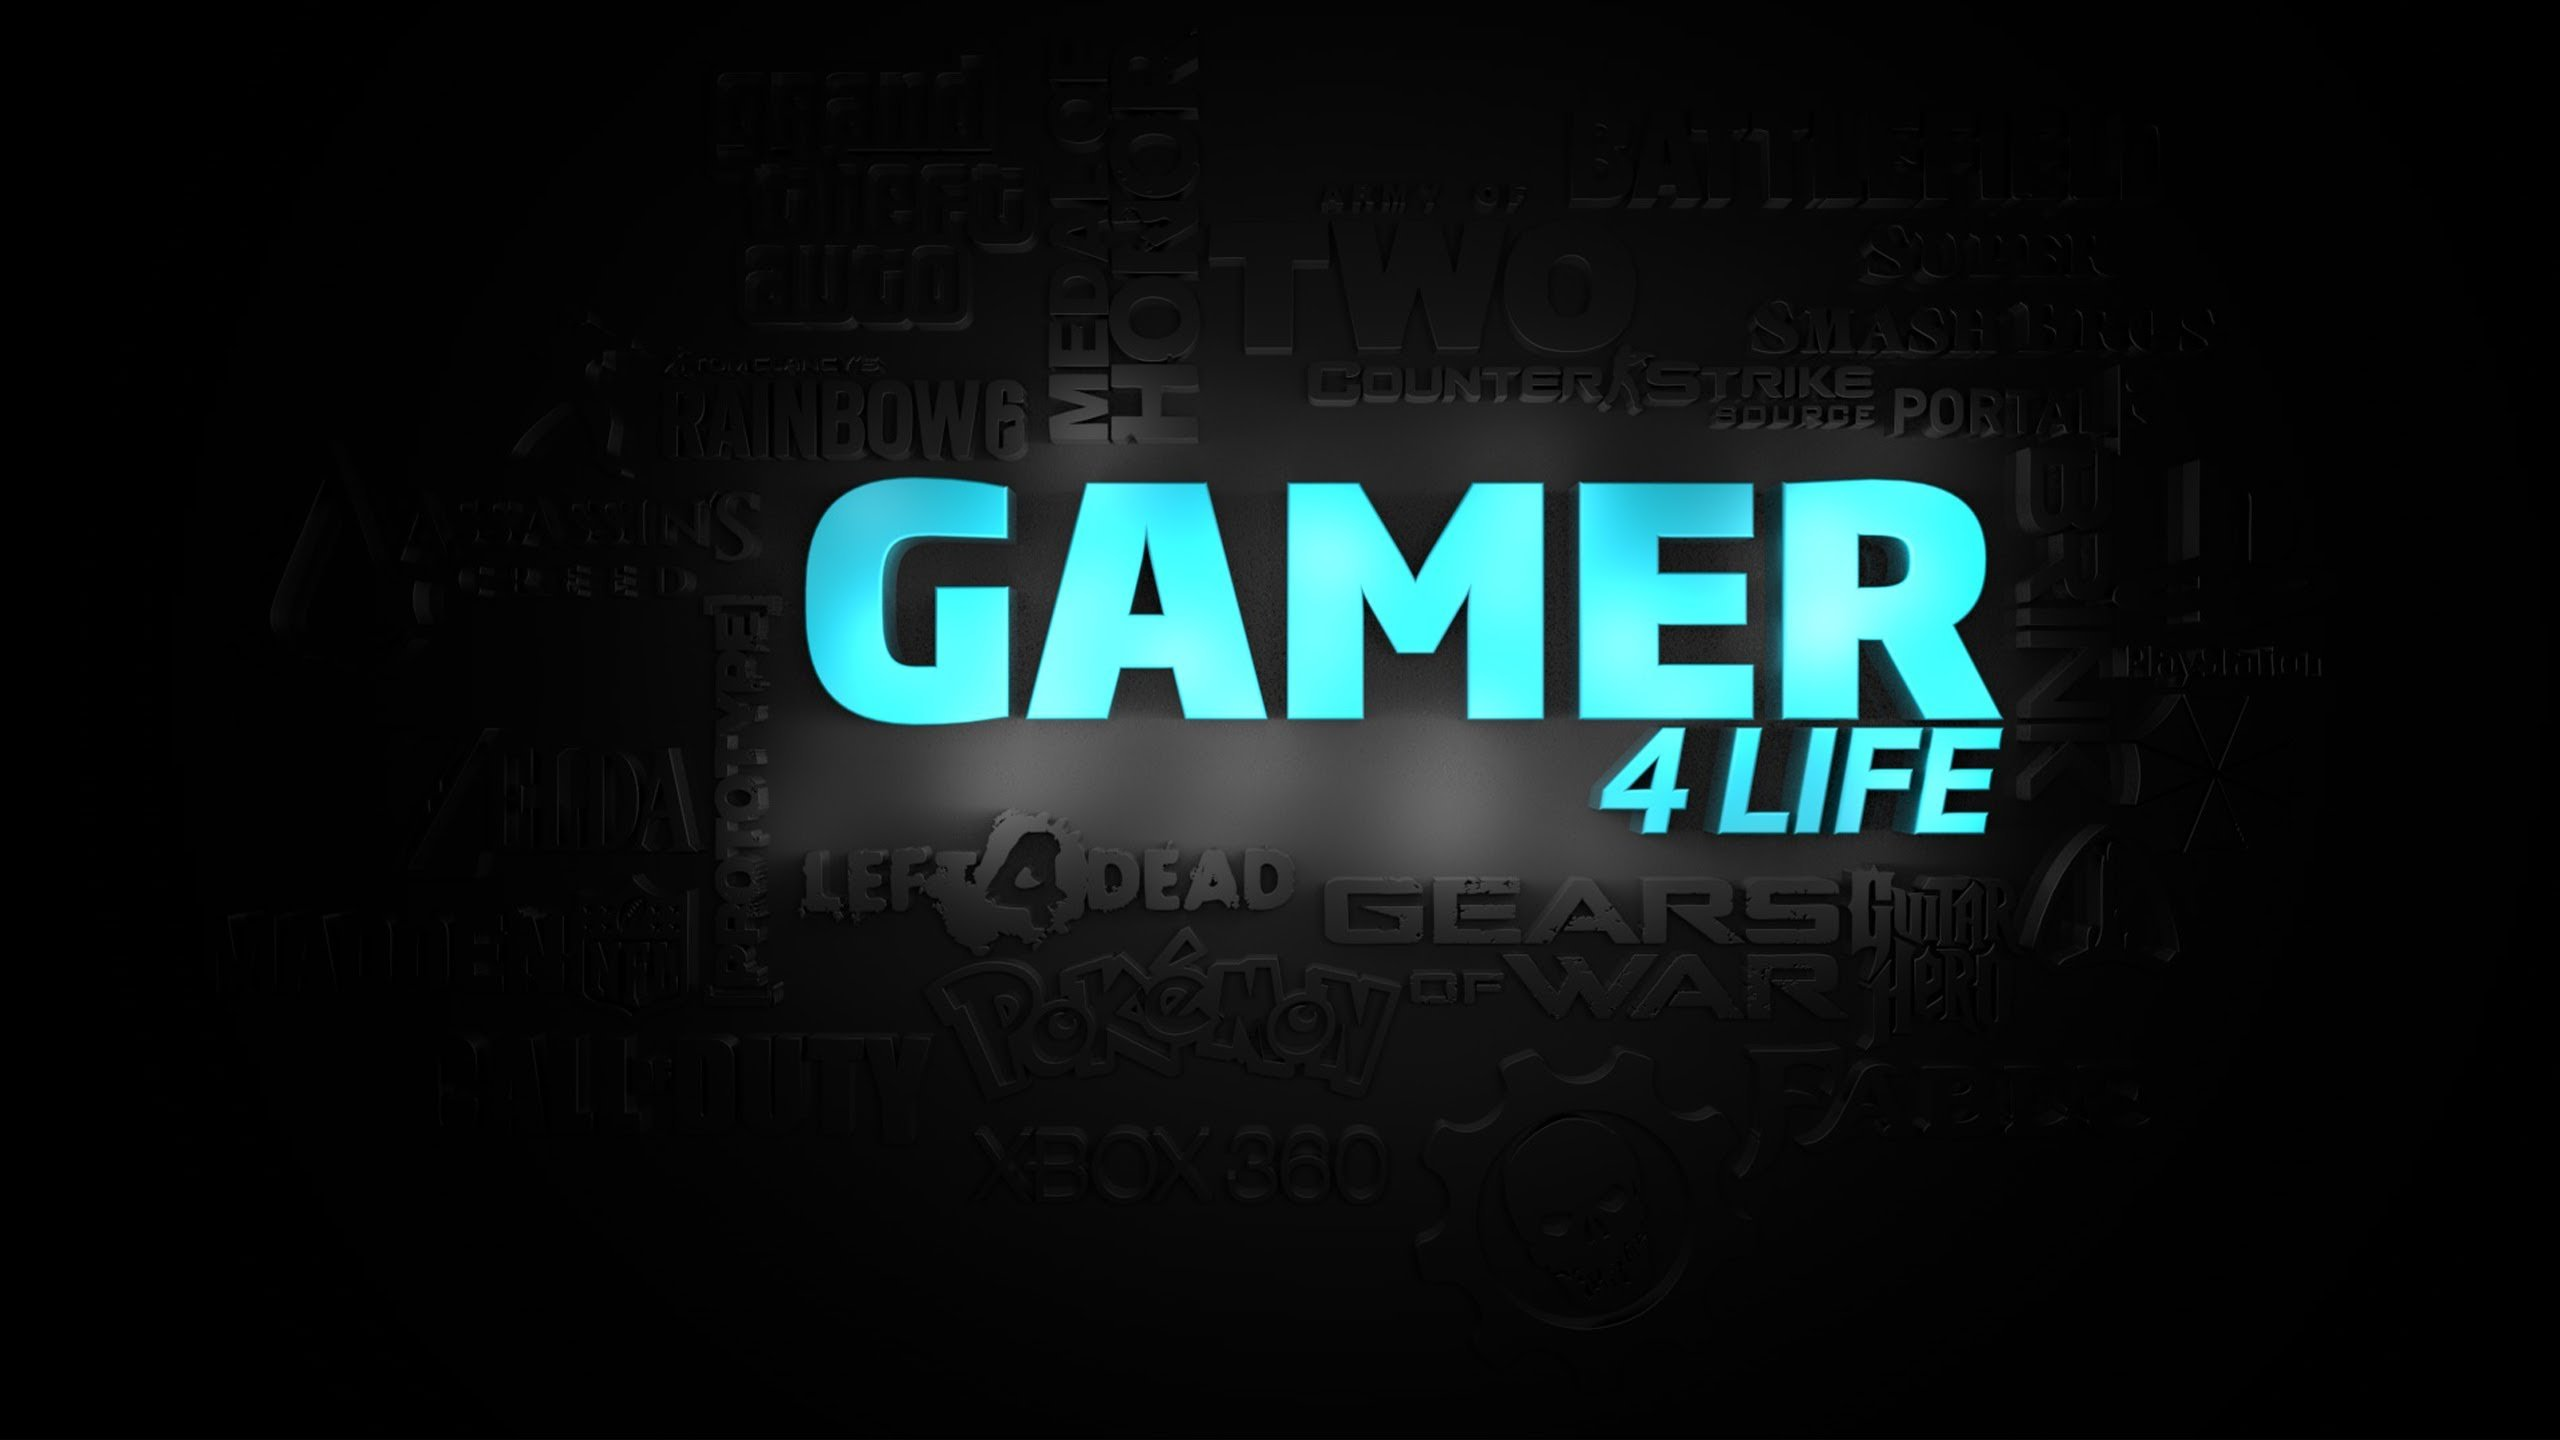 46 2048x1152 Gaming Wallpaper On Wallpapersafari